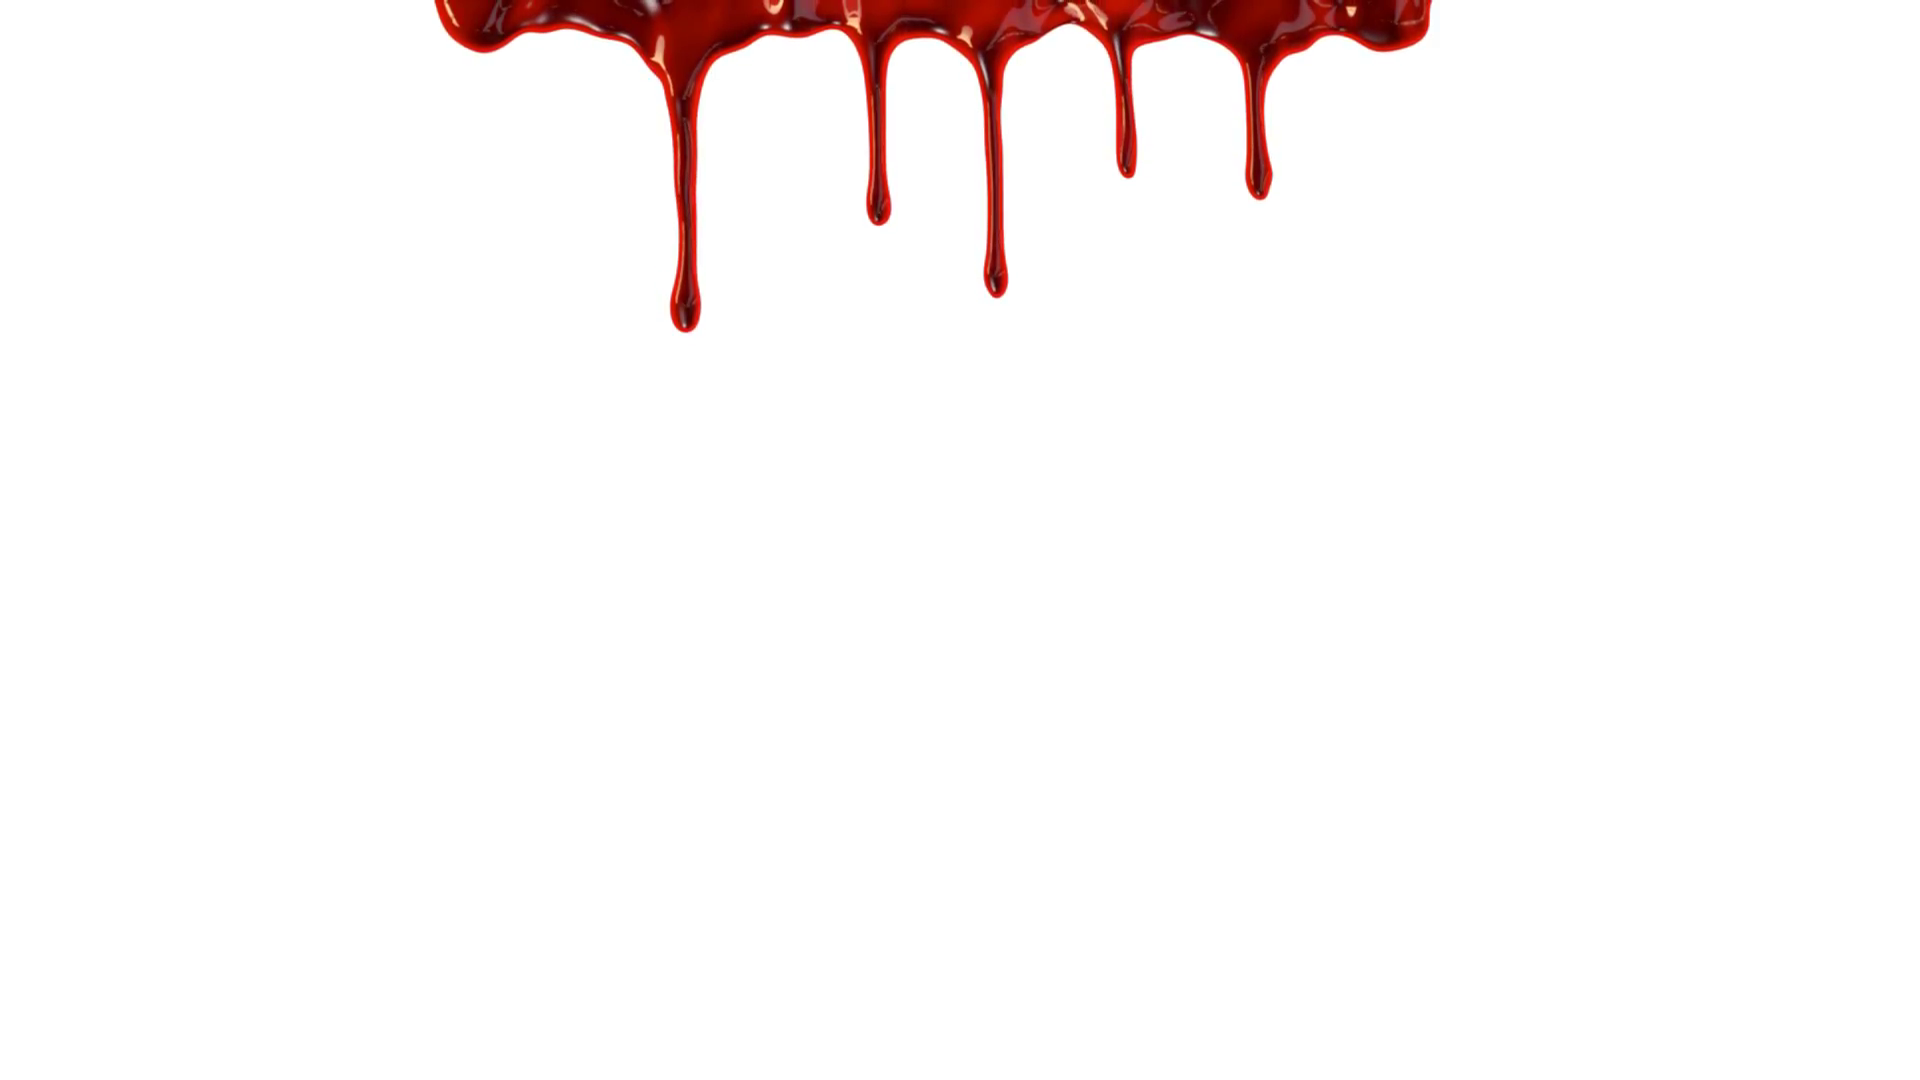 Blood clipart blood drip. Dripping down over white